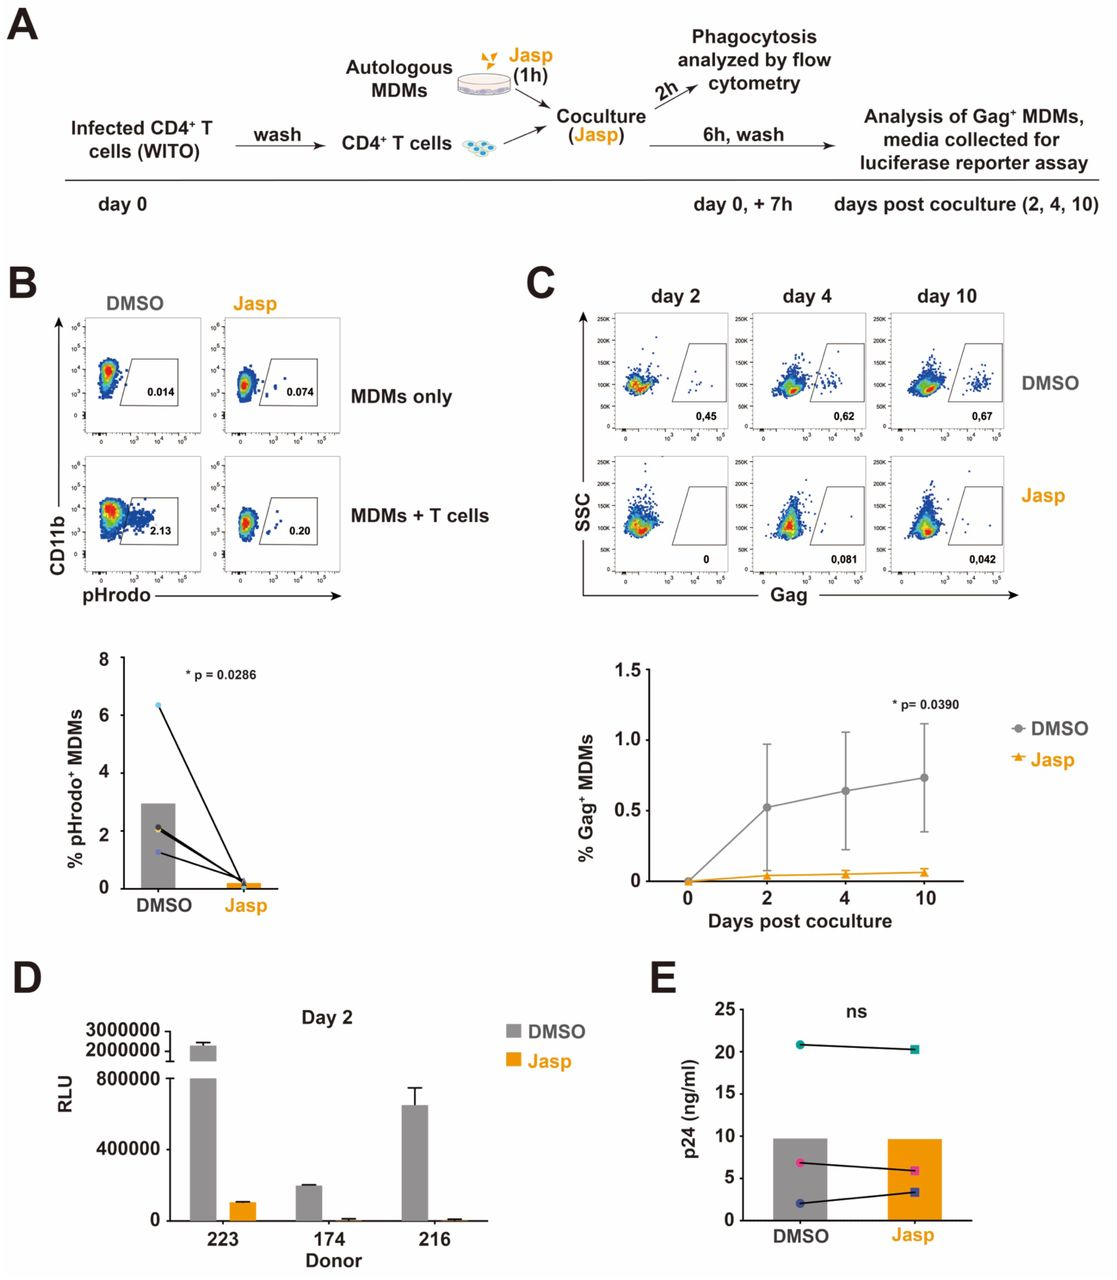 Inhibition of phagocytosis hinders productive infection of MDMs by T/F virus. (A) Experimental strategy for coculture of infected CD4 + T cells, with autologous MDMs pretreated with Jasplakinolide (Jasp), analysis of phagocytosis and MDM productive infection. Pretreated MDMs (1 h with Jasp or vehicle (DMSO)) were cocultured for 6 h with WITO-infected CD4 + T cells in the presence of Jasp or DMSO. MDMs were also cocultured for 2 h with the same number of pHrodo-treated CD4 + T cells and analyzed for phagocytosis by flow cytometry. MDMs were maintained in culture after washing-off T cells and collected at the indicated time points for intracellular Gag staining and flow cytometry analysis. Evaluation of infectious virus production was determined as described above using the TZM-bl assay. (B) Inhibition of phagocytosis by Jasp. Representative flow cytometry dot-plots of MDMs (CD11b + ) with percentage of pHrodo + populations corresponding to phagocytosis of CD4 + T cells by MDMs (top) and summary graph (bottom), analyzed by Mann-Whitney U-test, (*, P